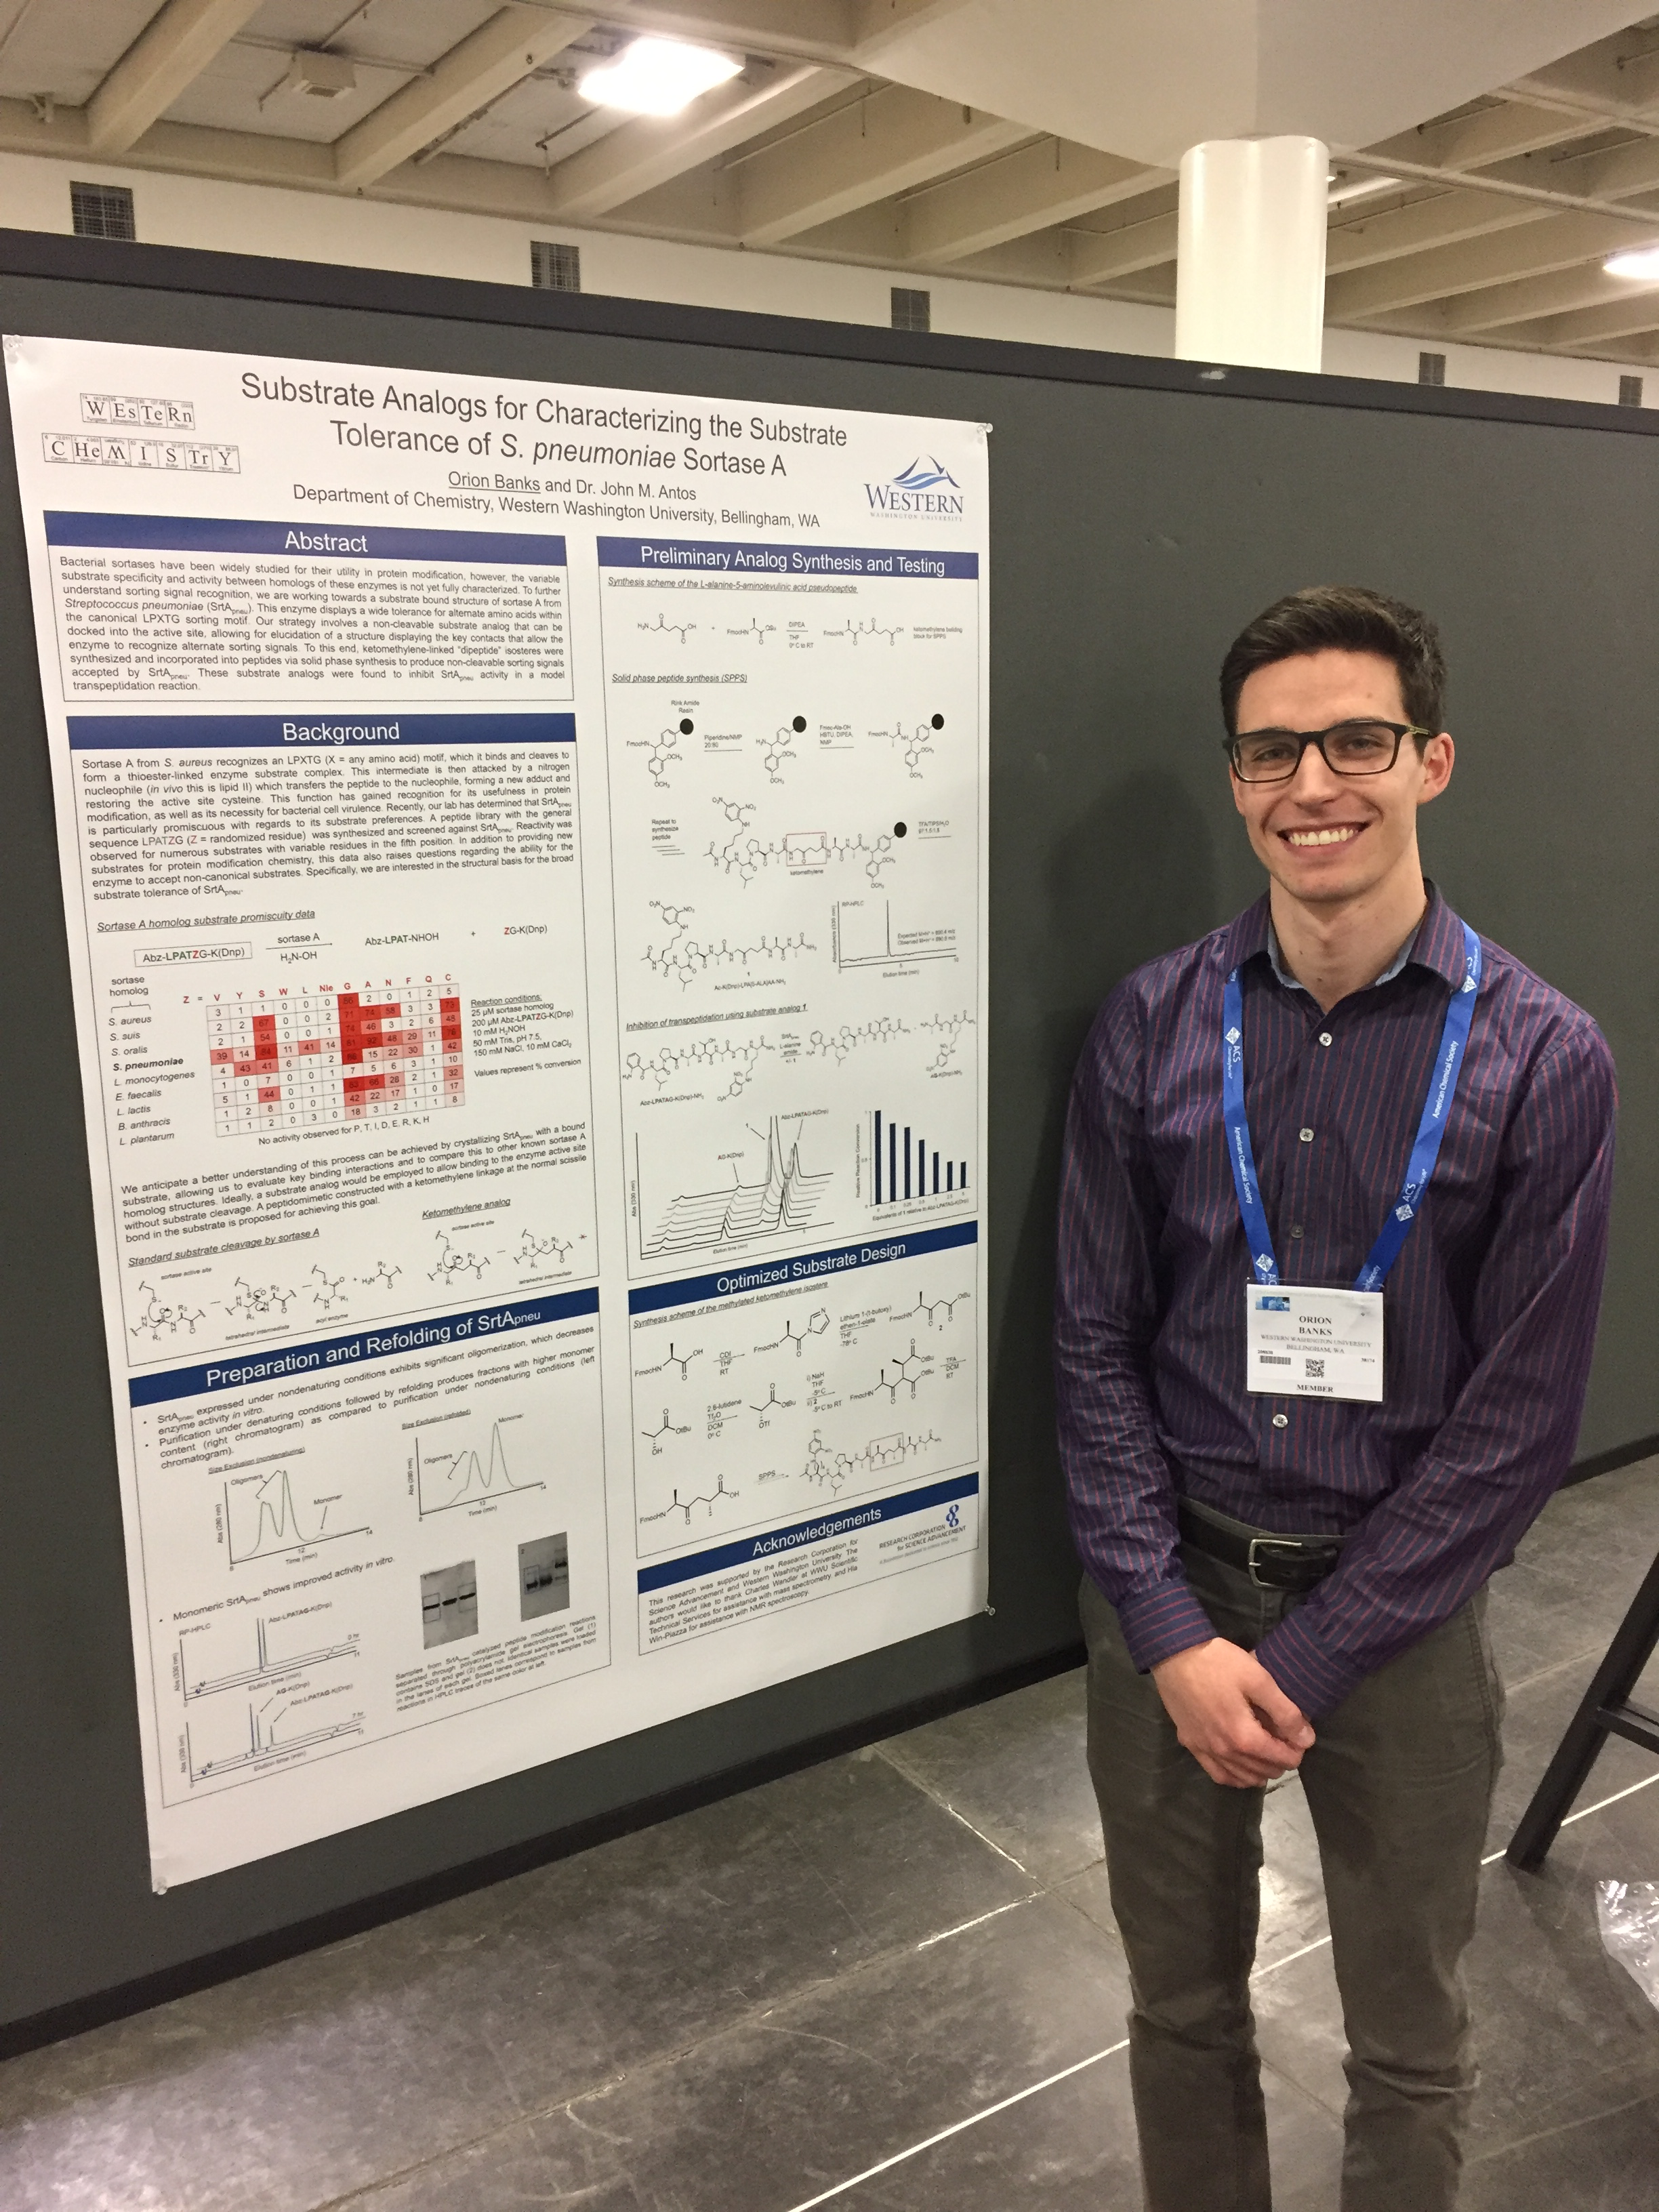 Orion Banks smiling next to his research poster